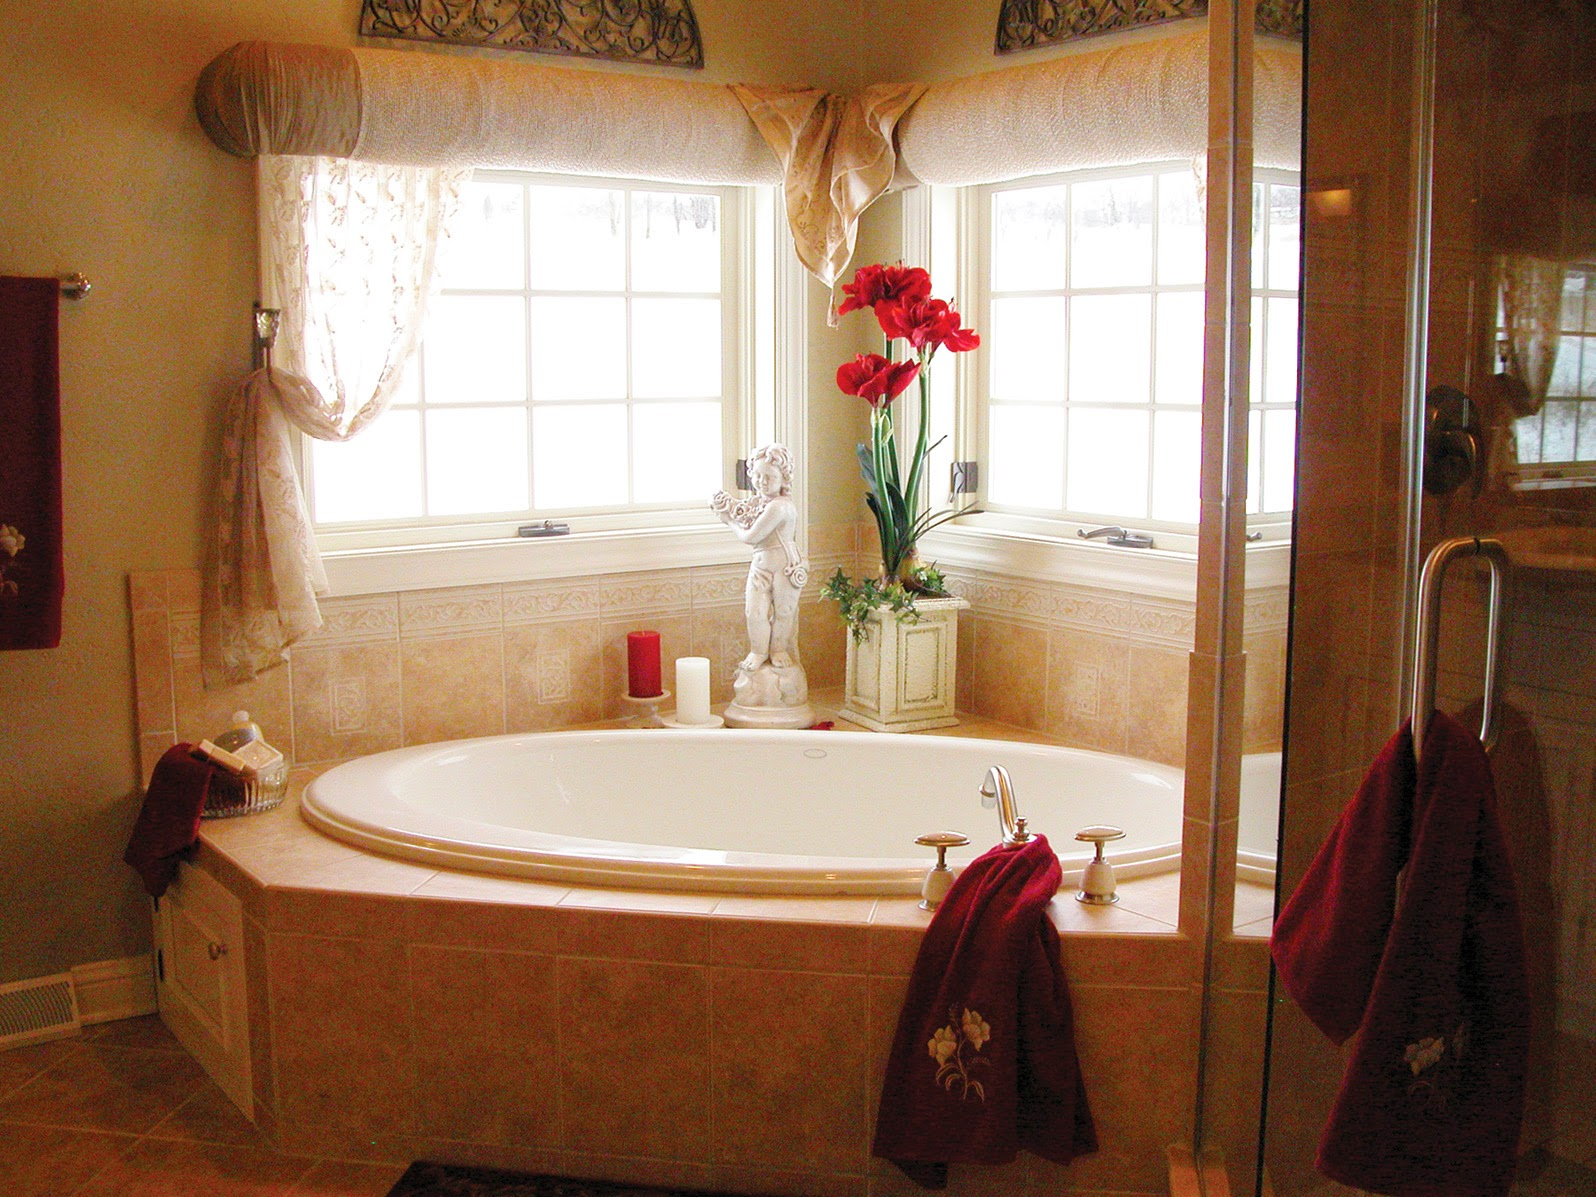 Pretty bathroom ideas bathroom designs Pretty bathroom ideas